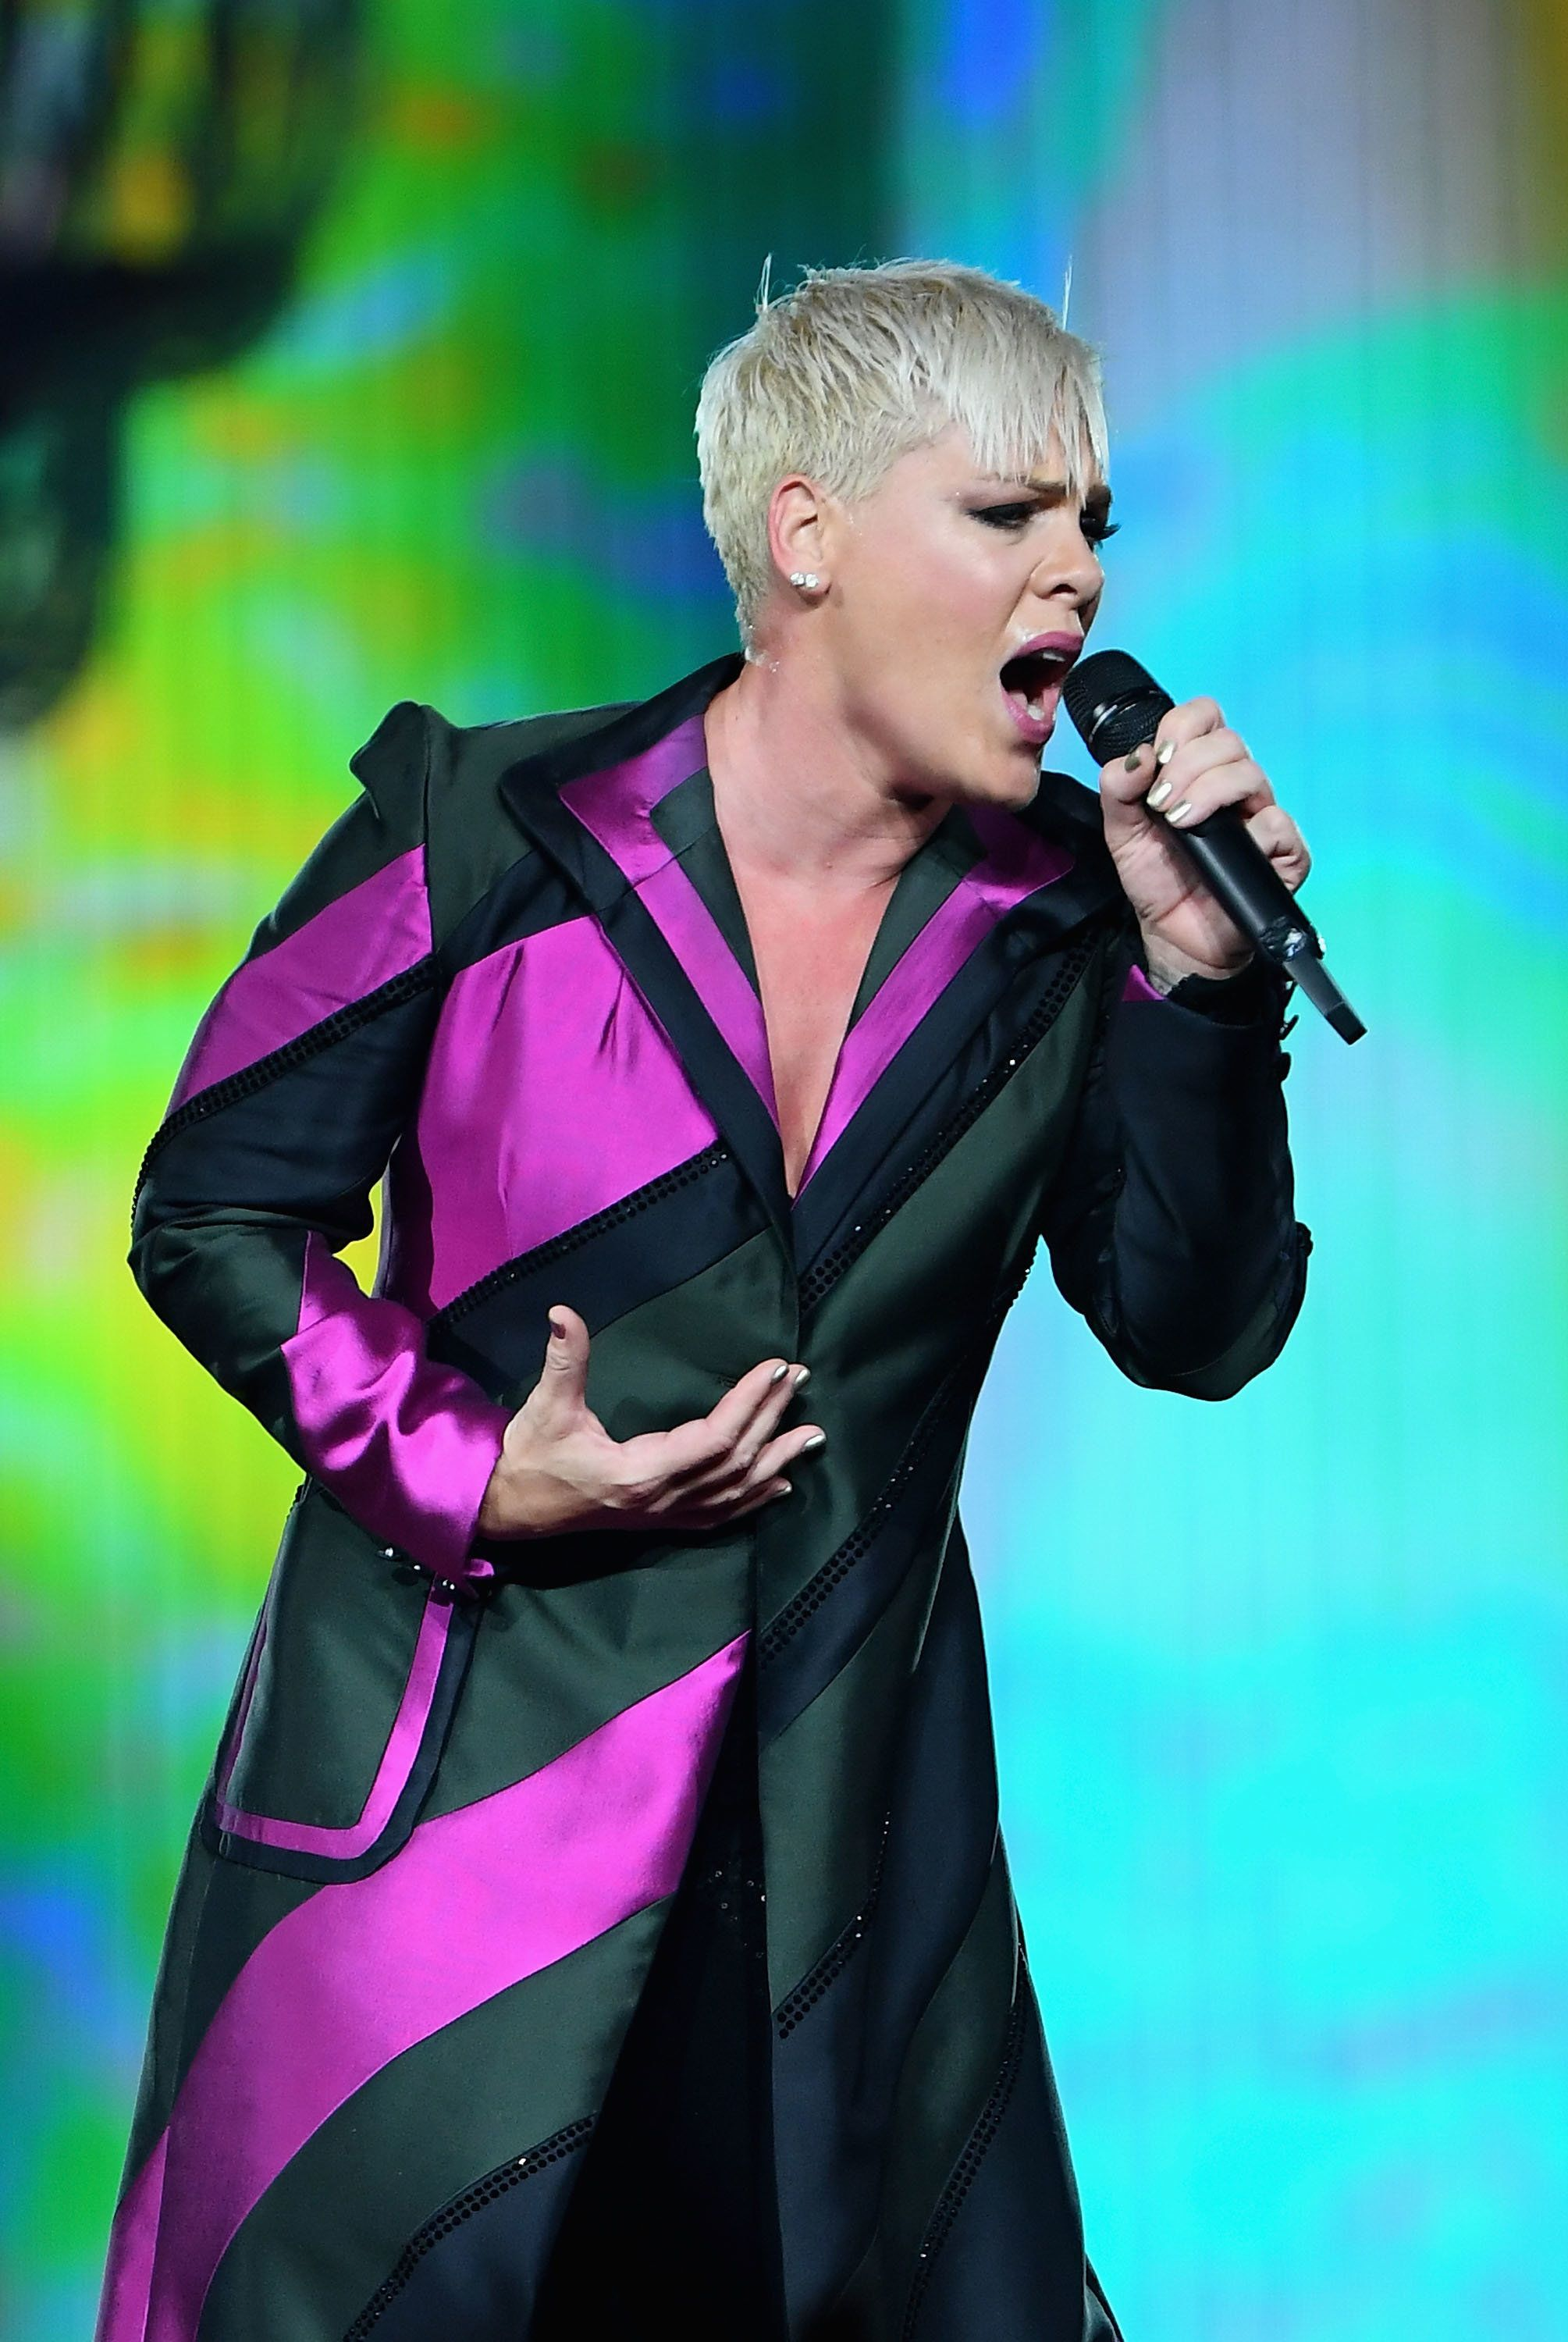 MELBOURNE, AUSTRALIA - JULY 16:  Pink performs at Rod Laver Arena on July 16, 2018 in Melbourne, Australia.  (Photo by Quinn Rooney/Getty Images)